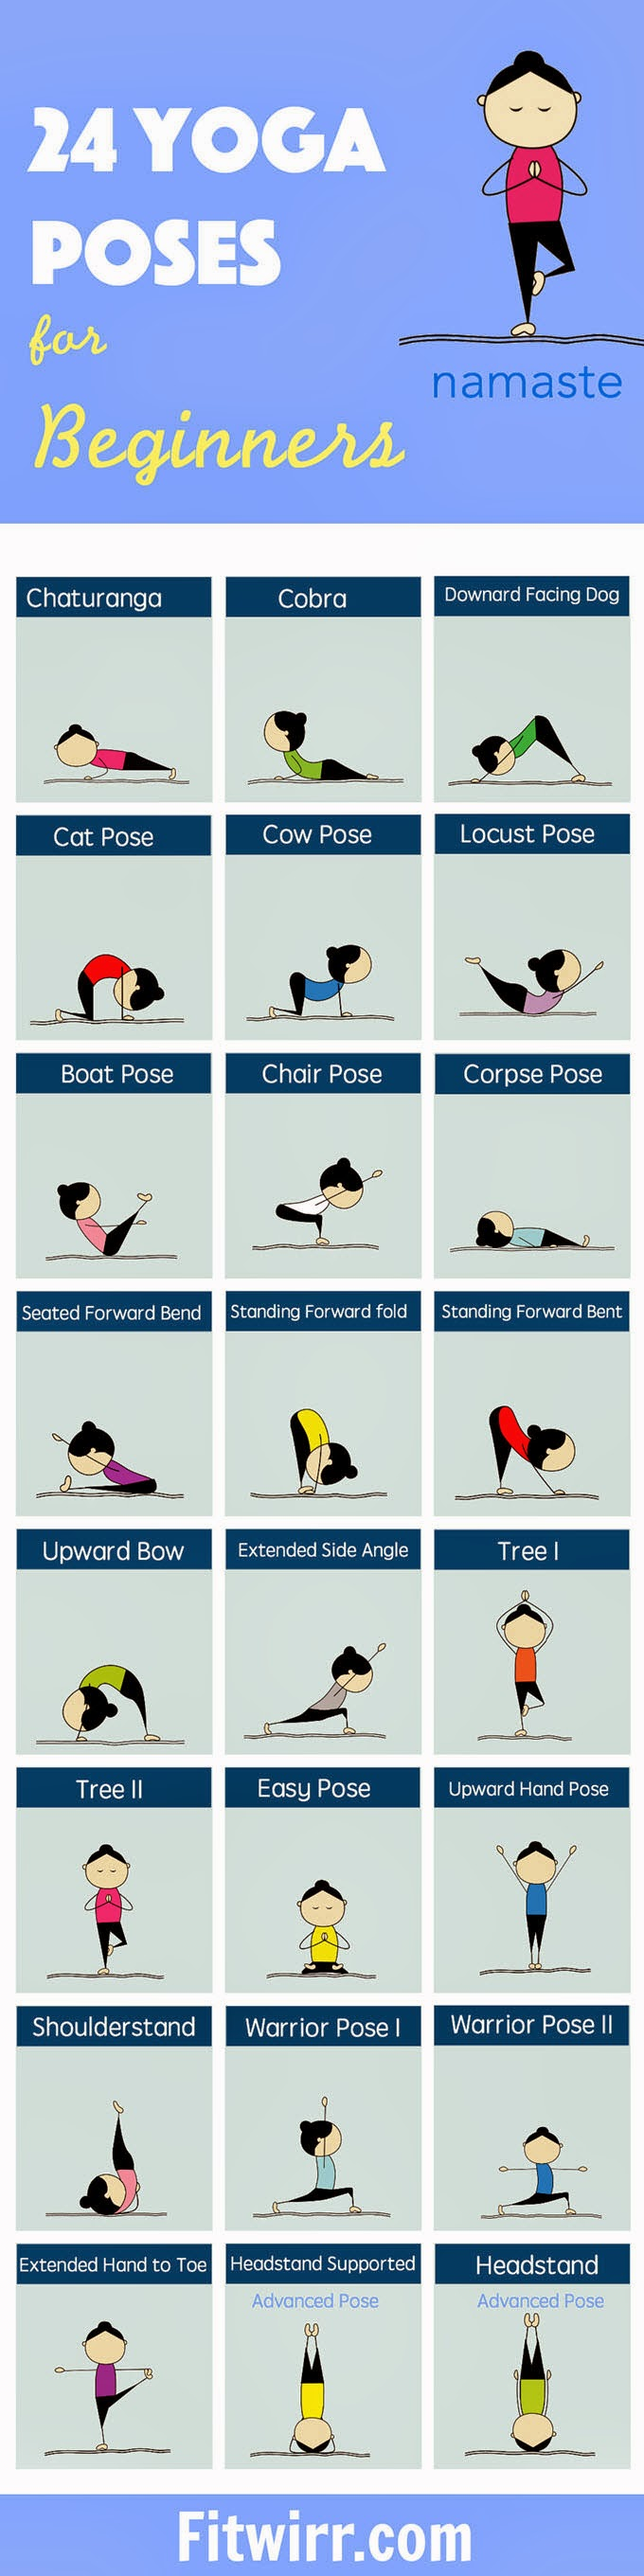 24 Yoga Poses for Beginners | Health Tips In Pics